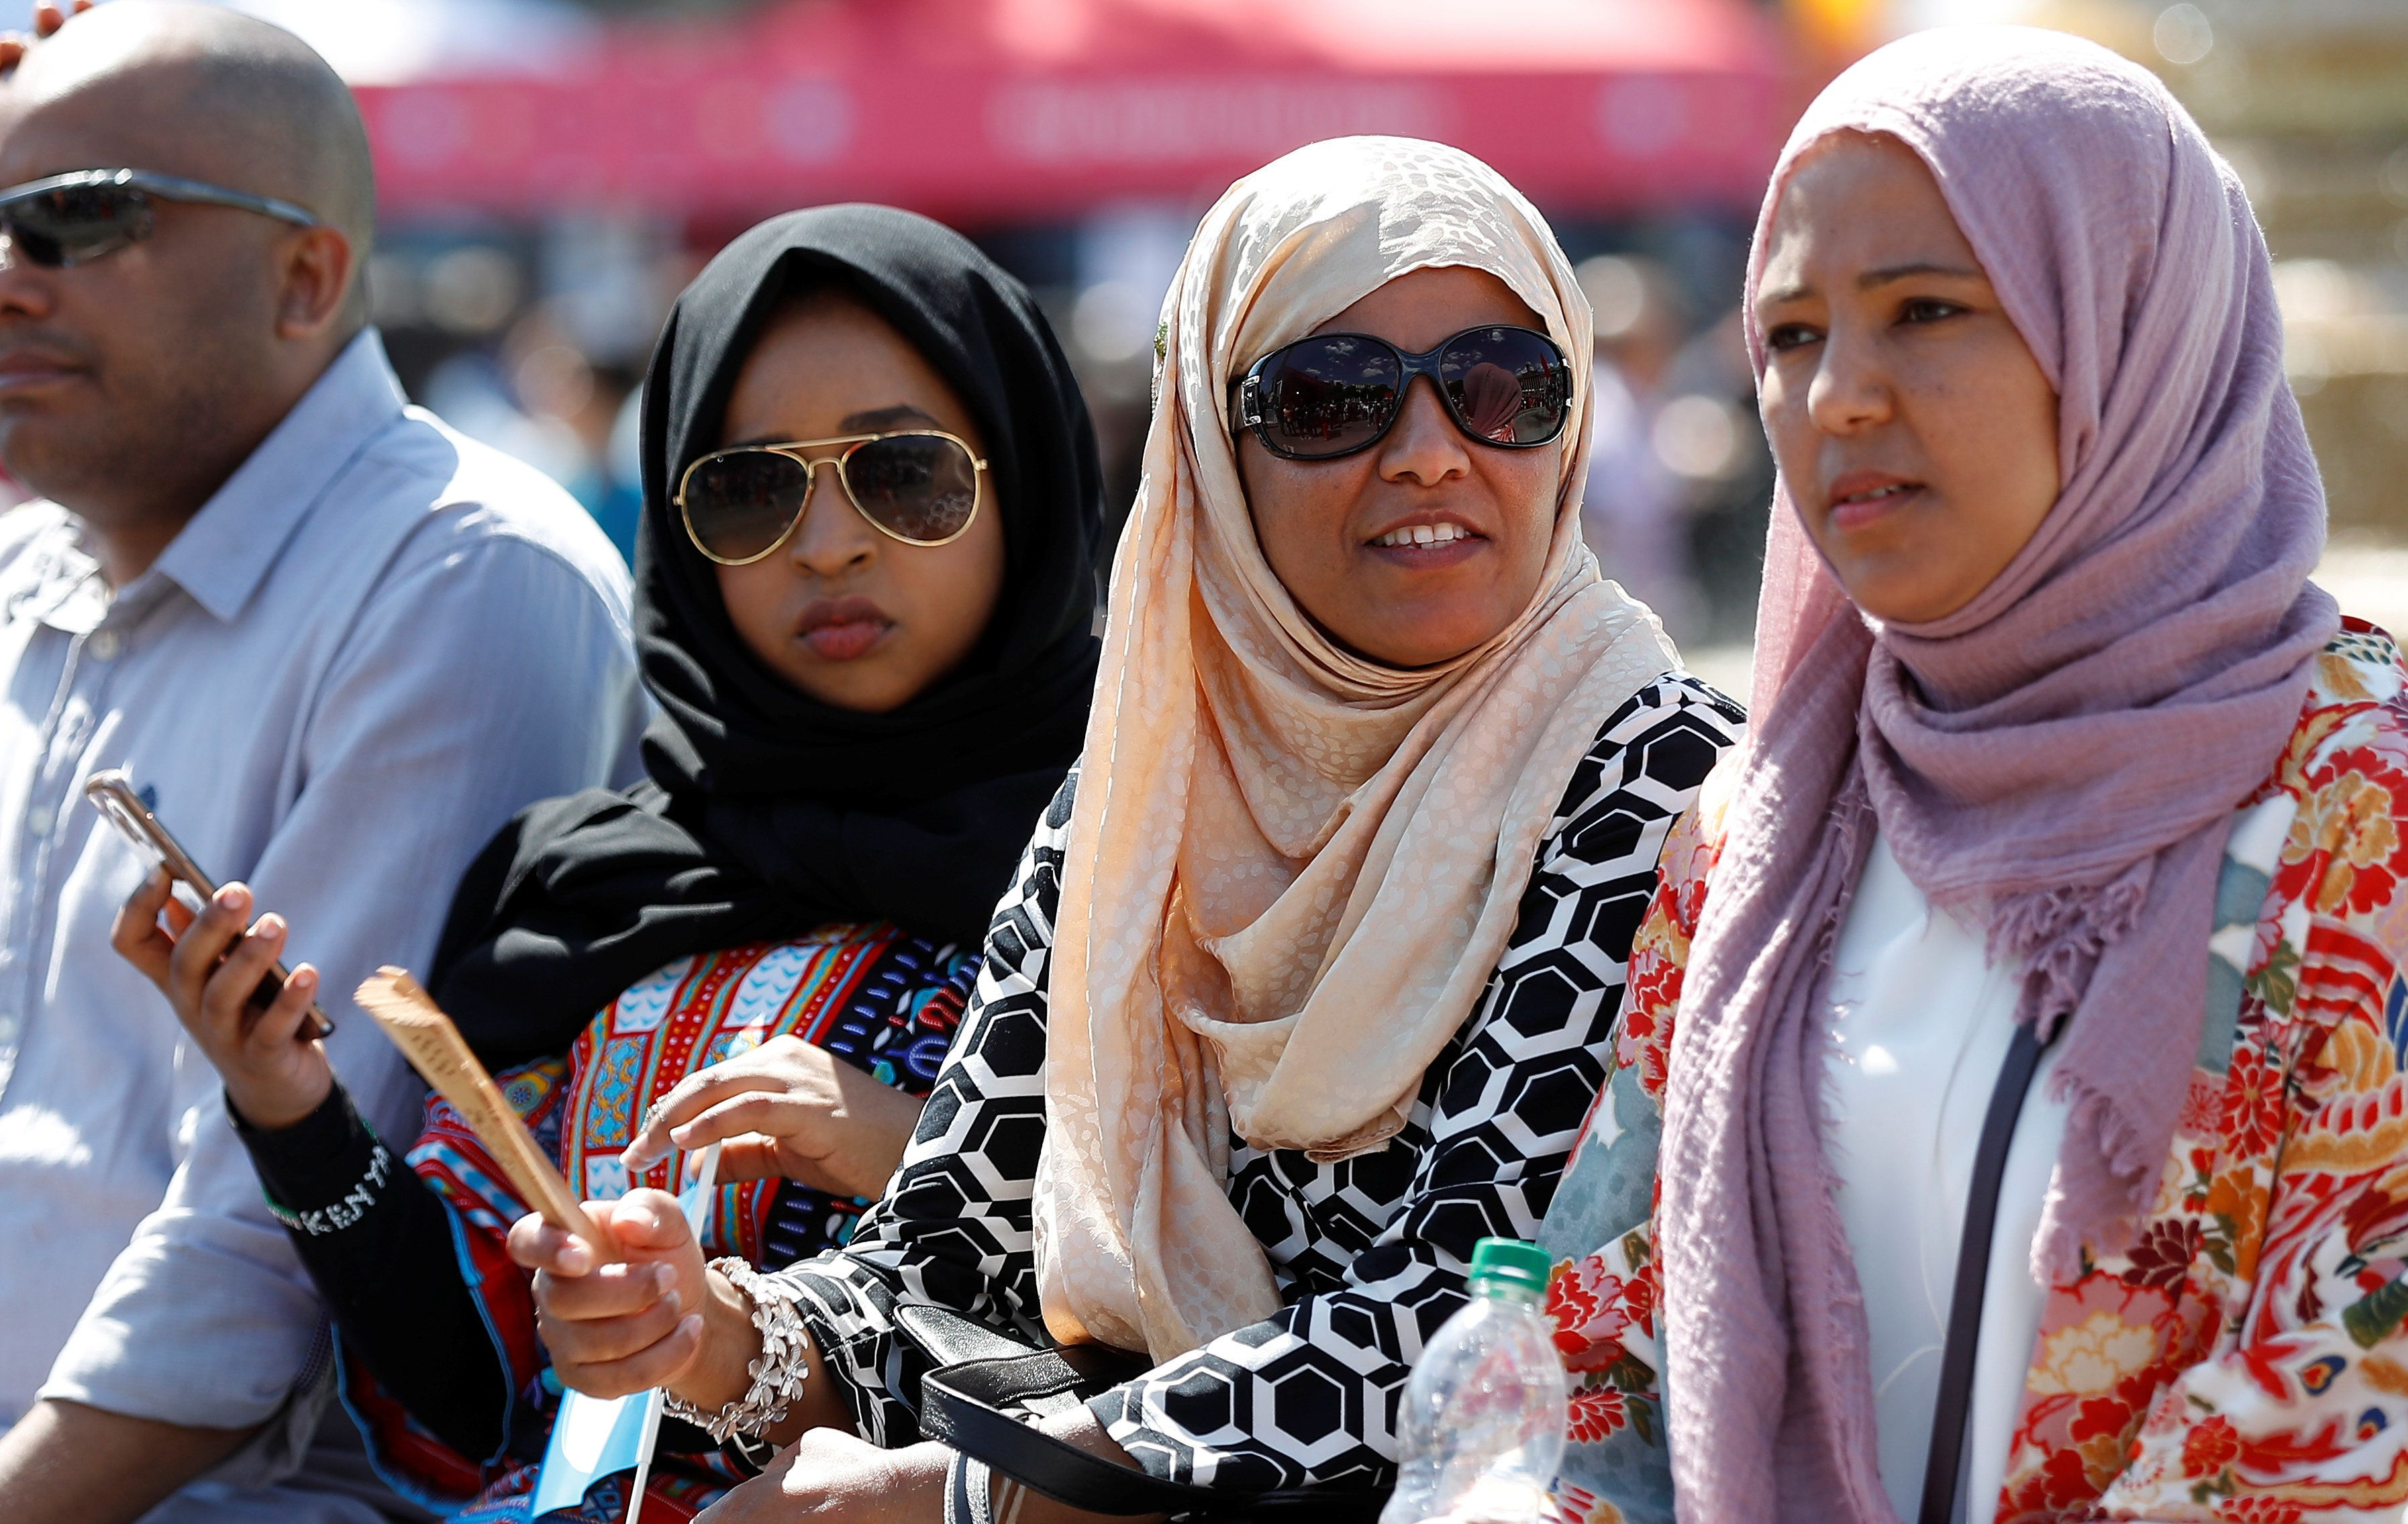 Womenattend Eid Festival 2017 in London.A British hate-monitoring group said in-person Islamophobic incidents in